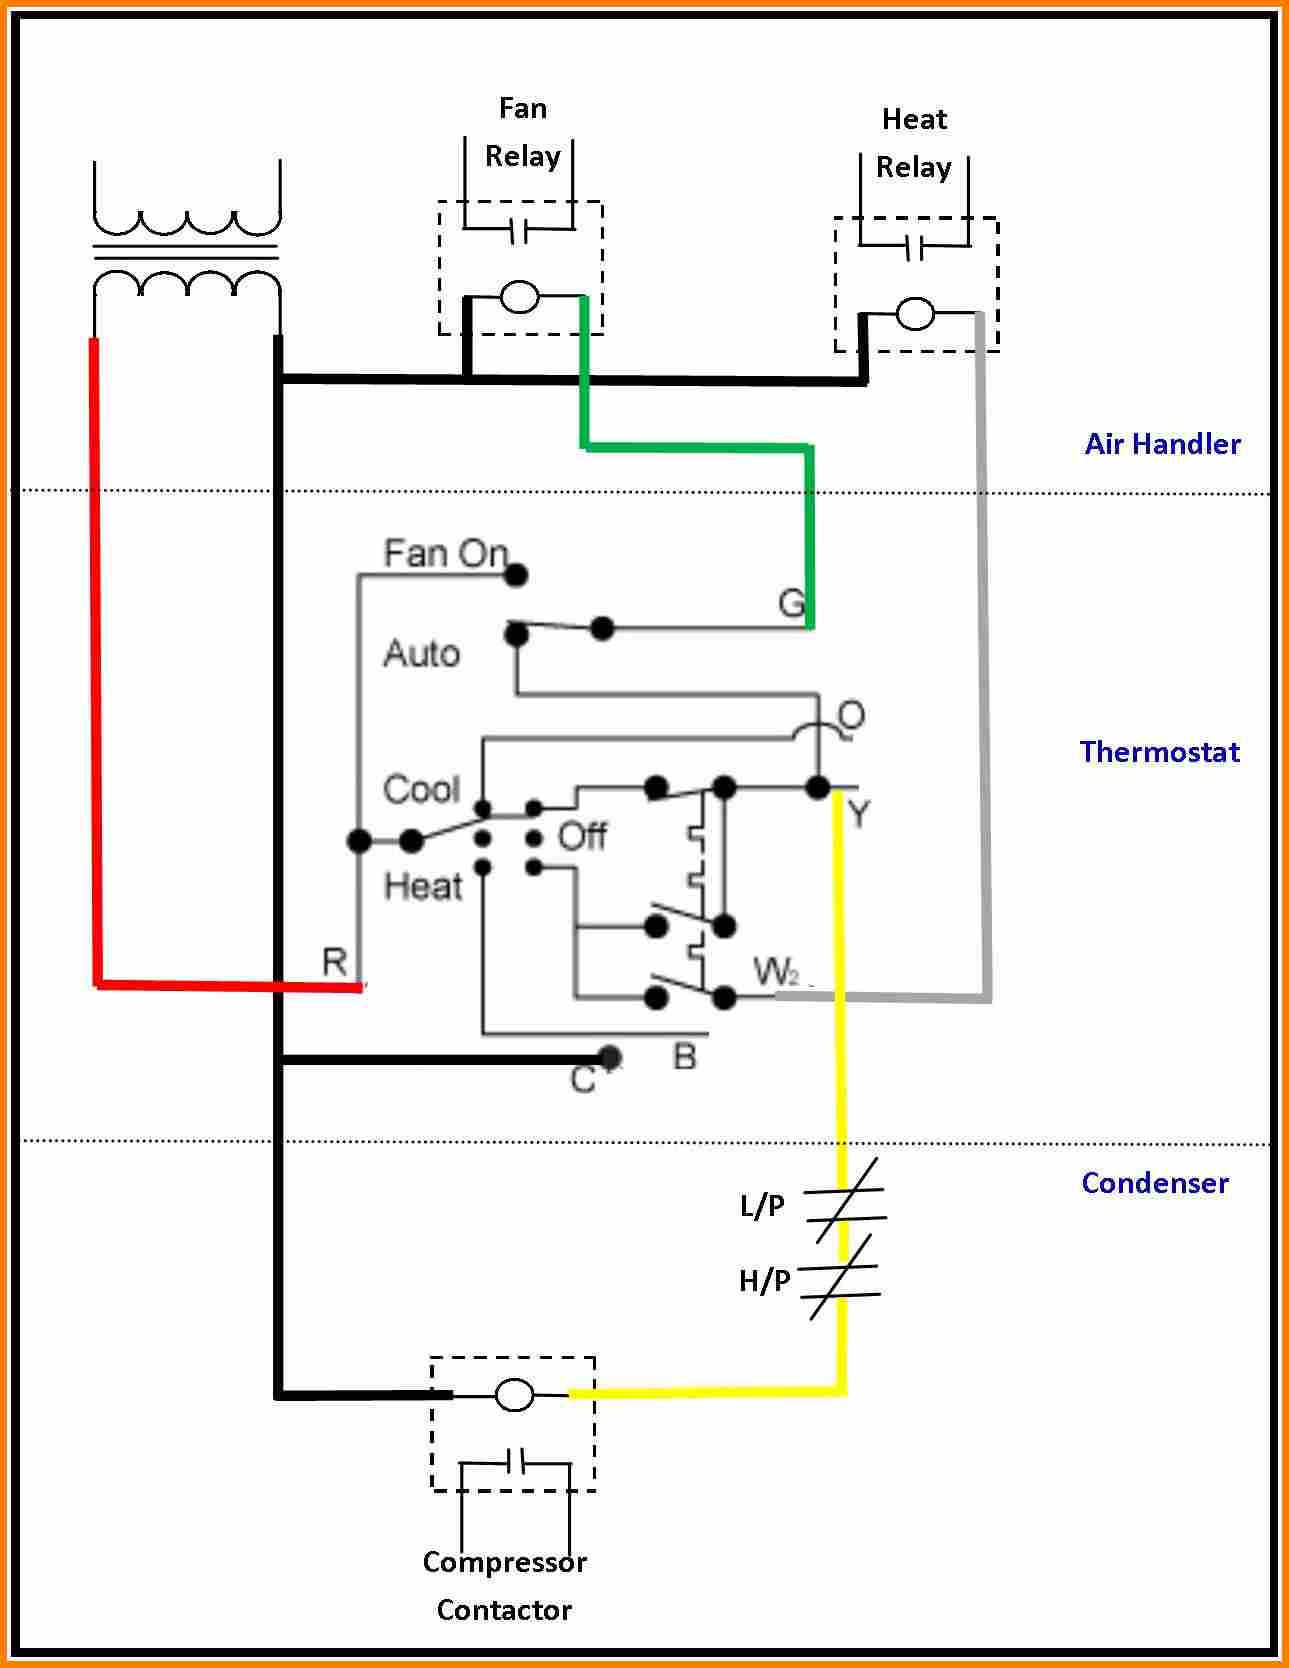 Find Out Here Intertherm thermostat Wiring Diagram Download Gas Furnace Wiring Diagram Pictorial on